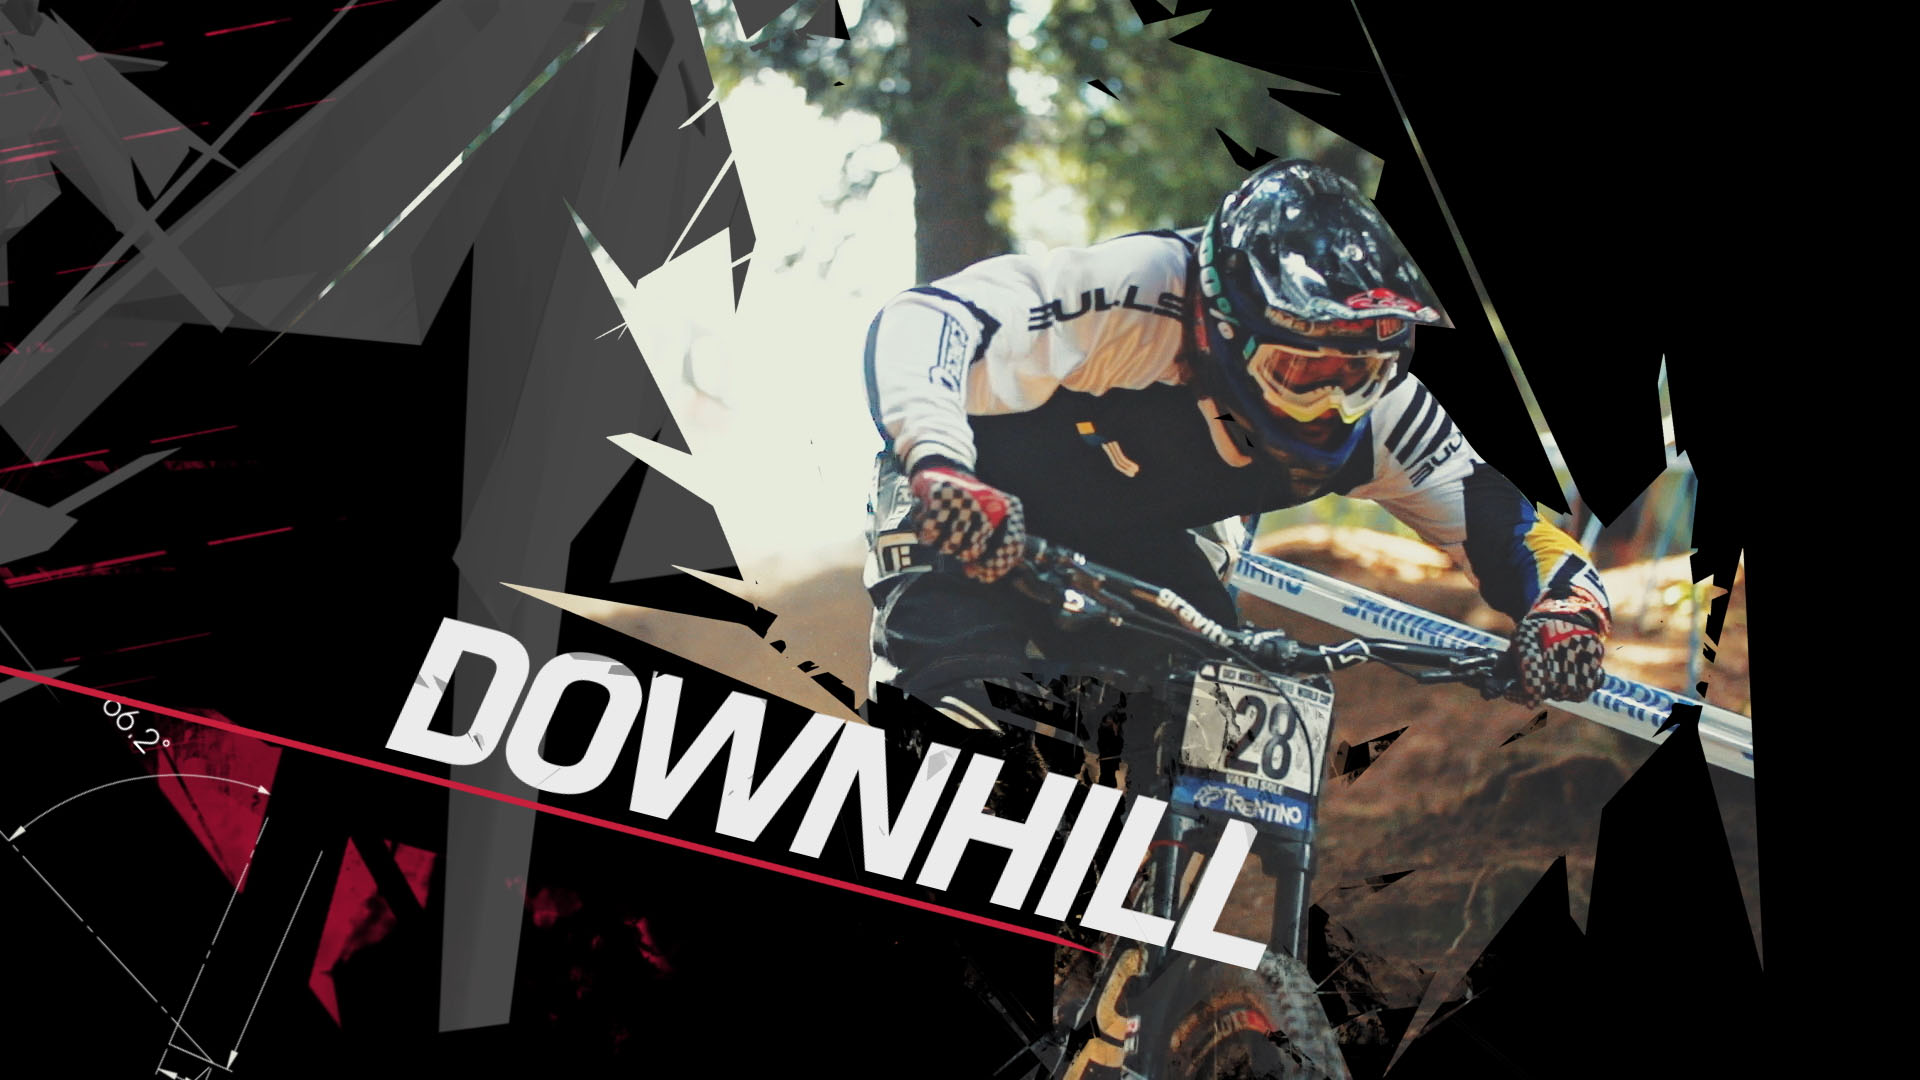 UCI Mountainbike World Cup 2016 Downhill